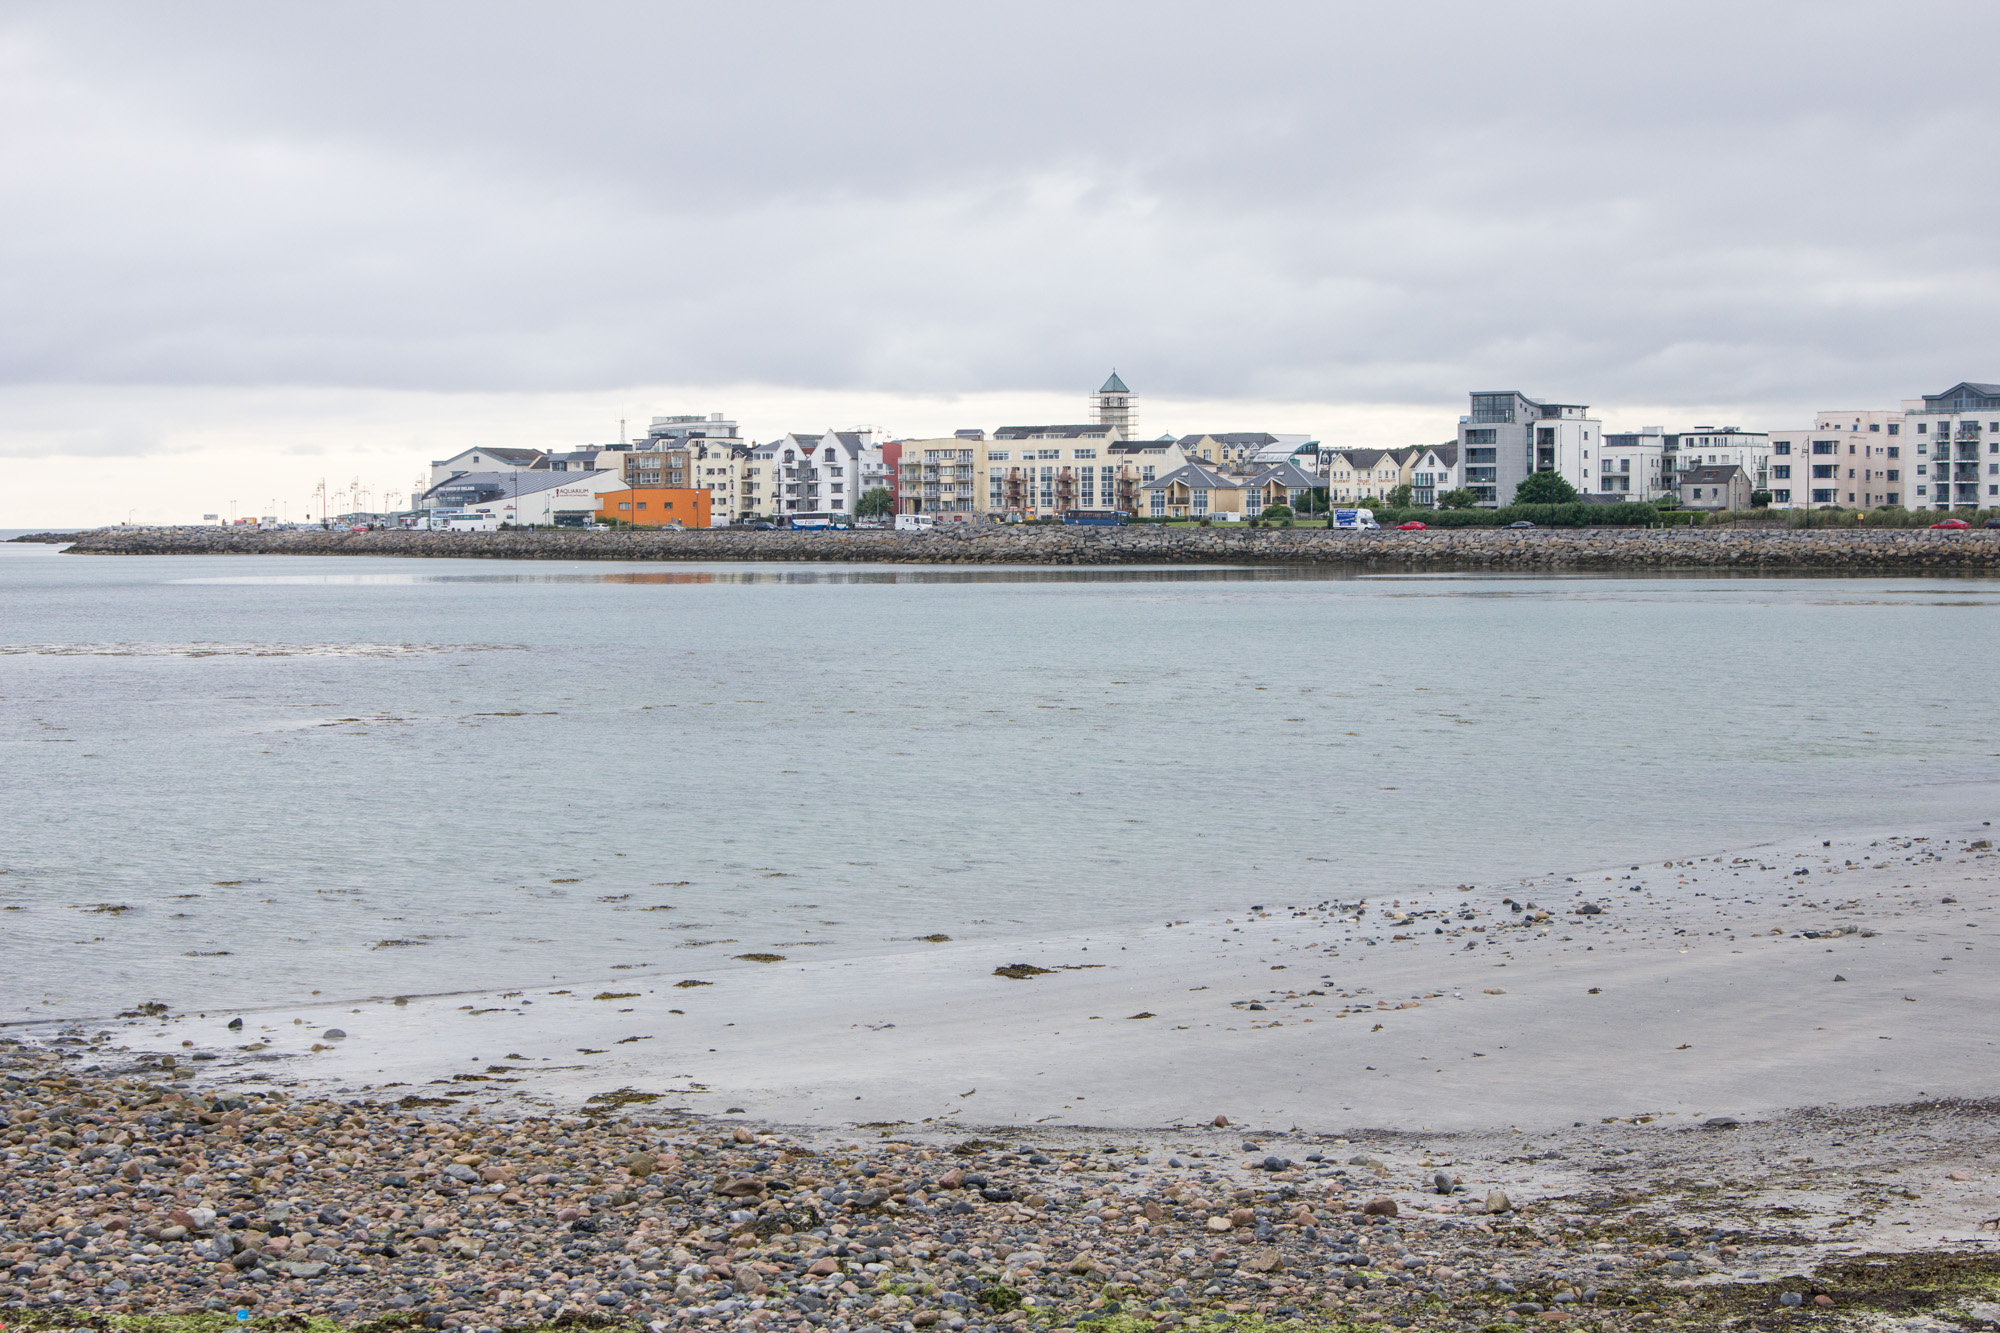 Salthill Promenade Walk in Galway, Ireland is along the coast with views of the ocean and houses behind it